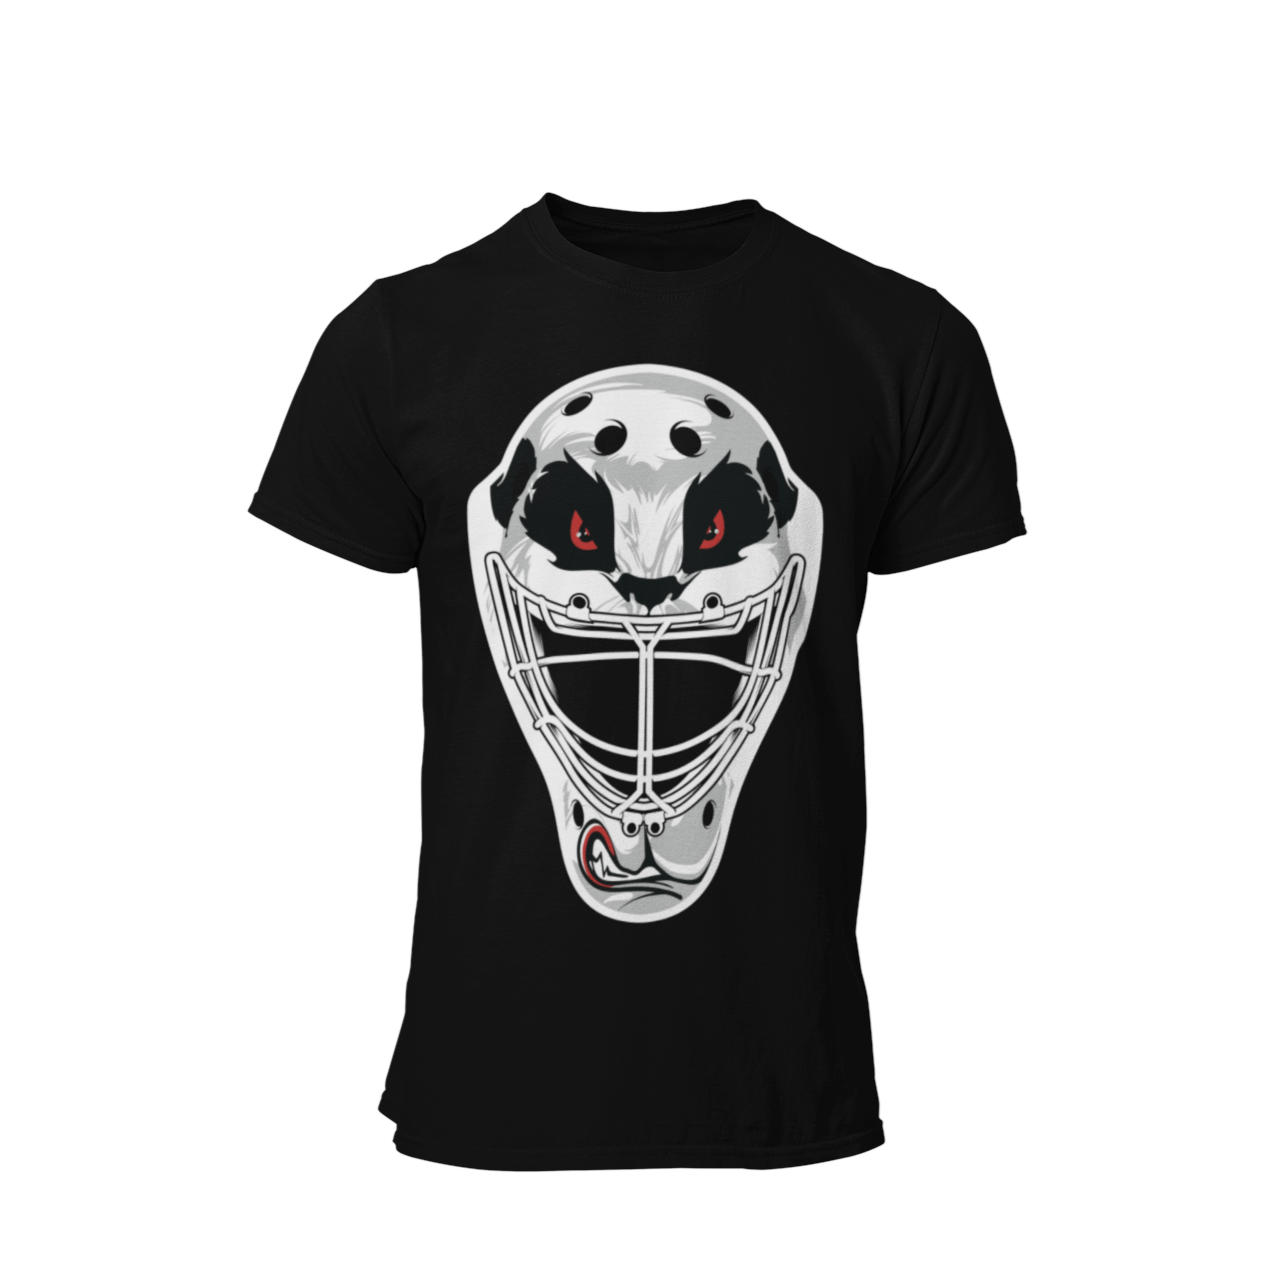 Black Unisex Panda Hockey Mask Shirt